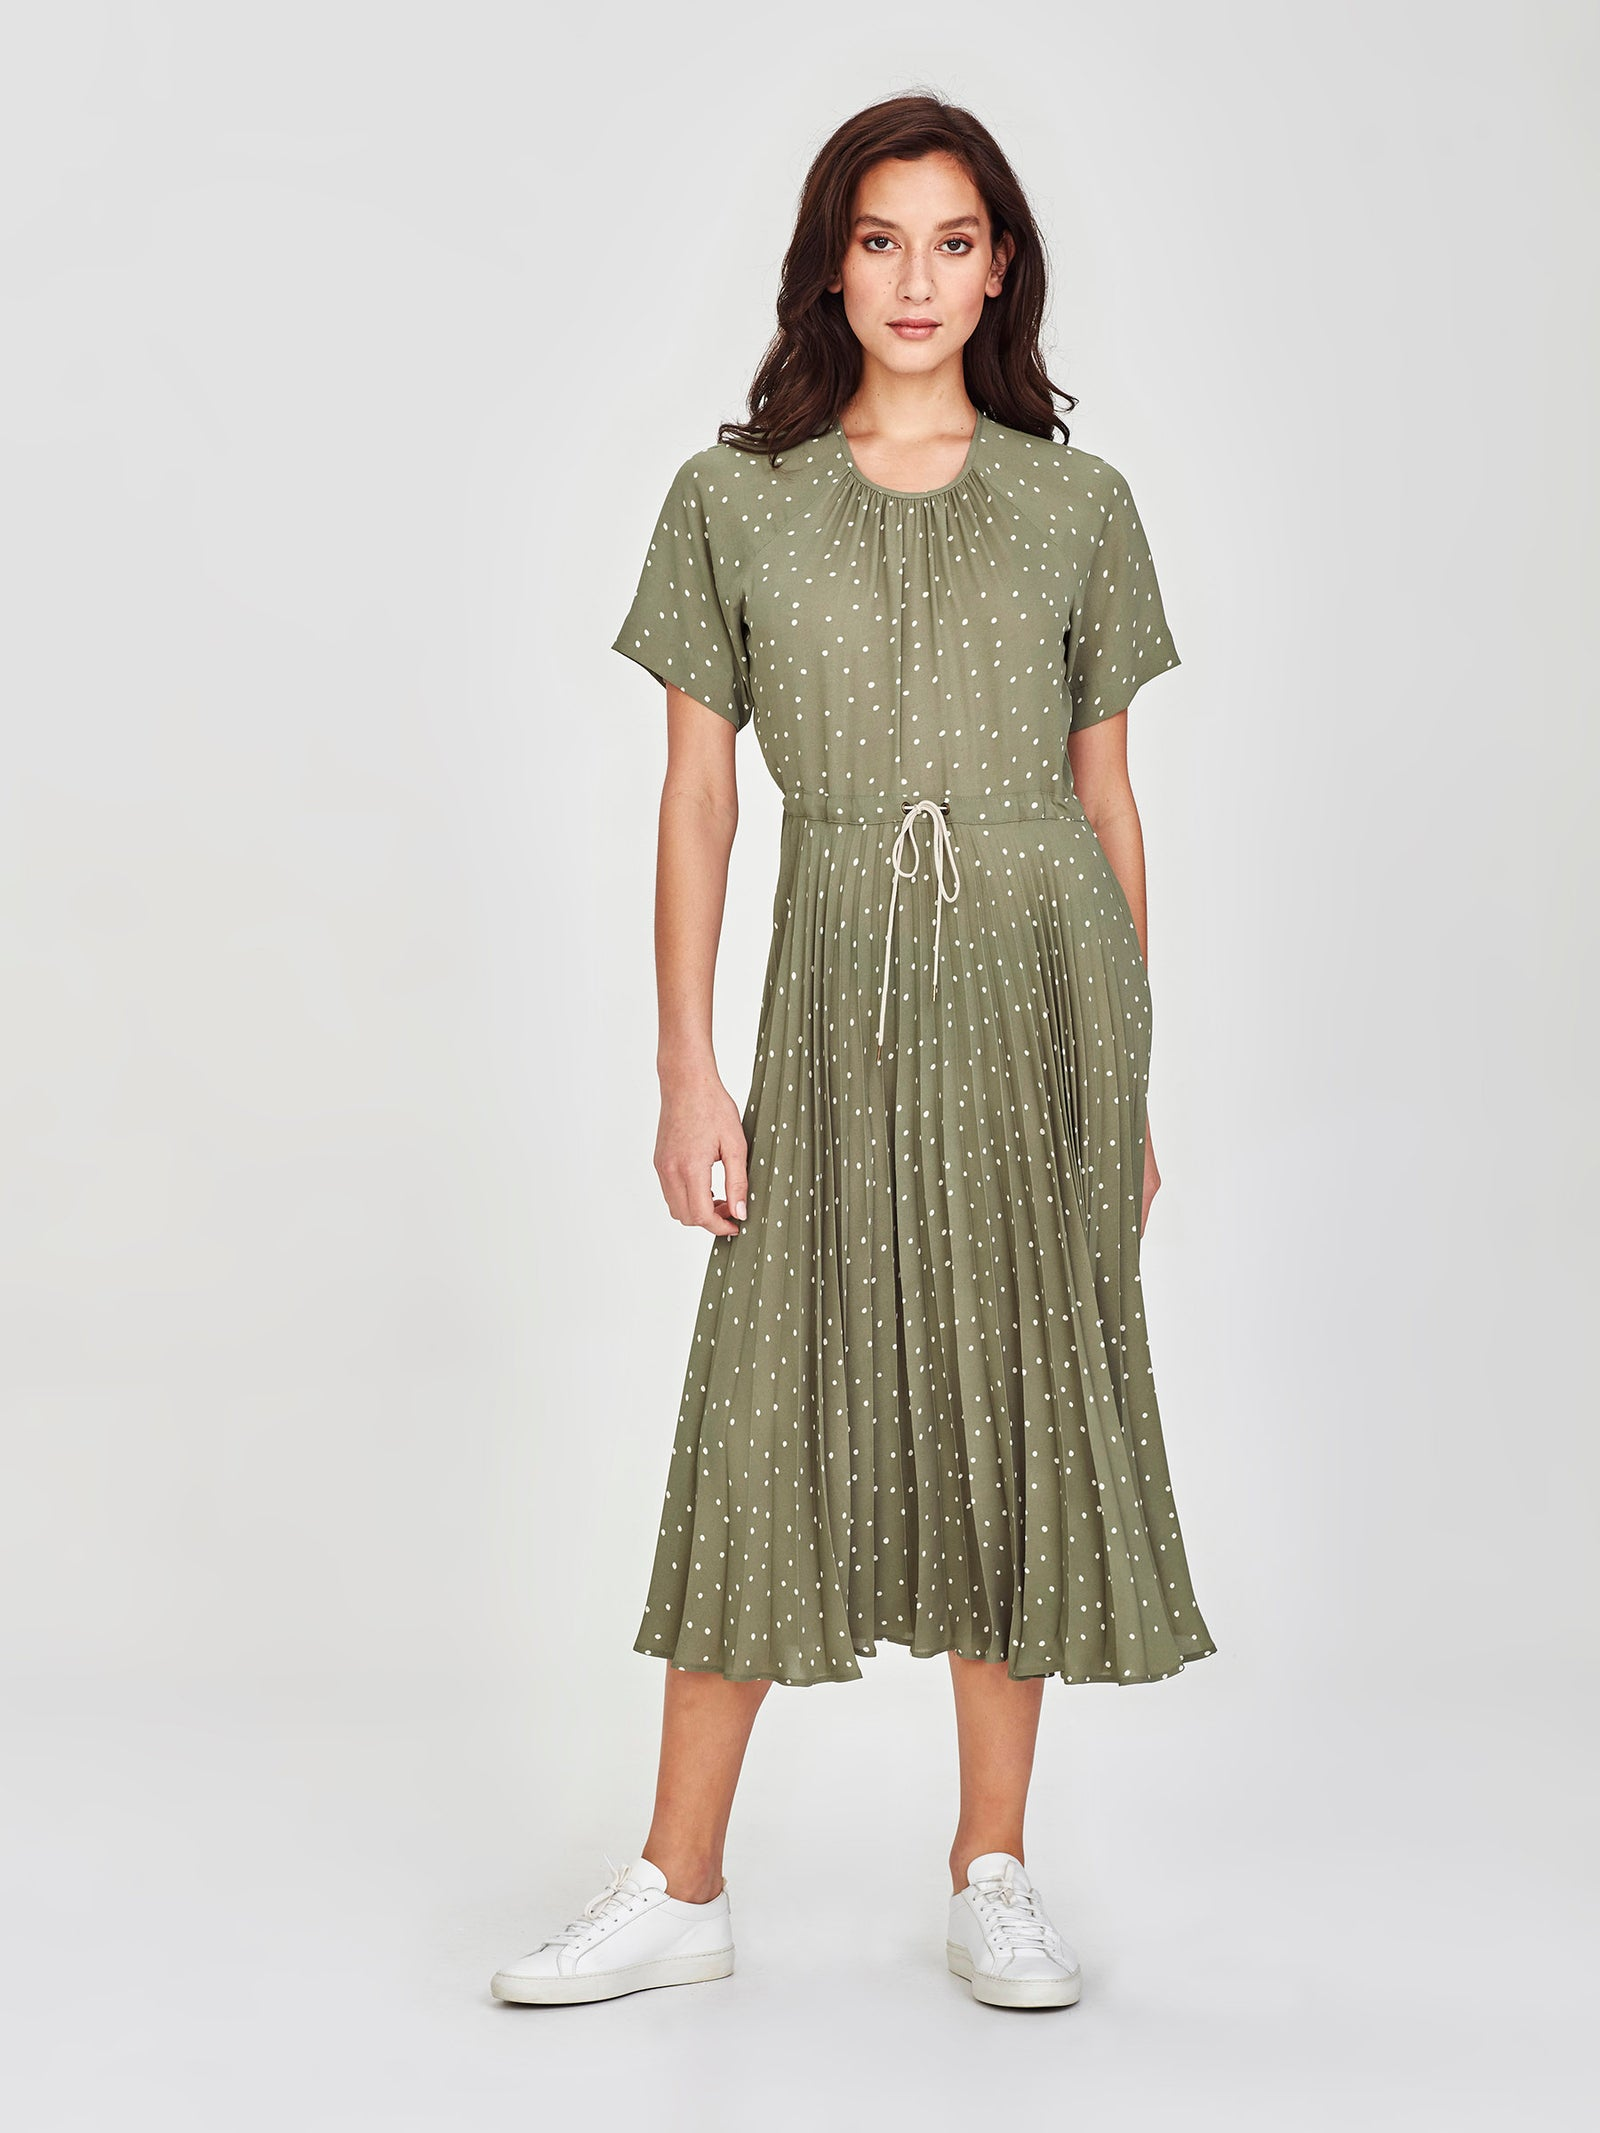 Gracie Pleat Dress (Spotty Crepe) Sea Green